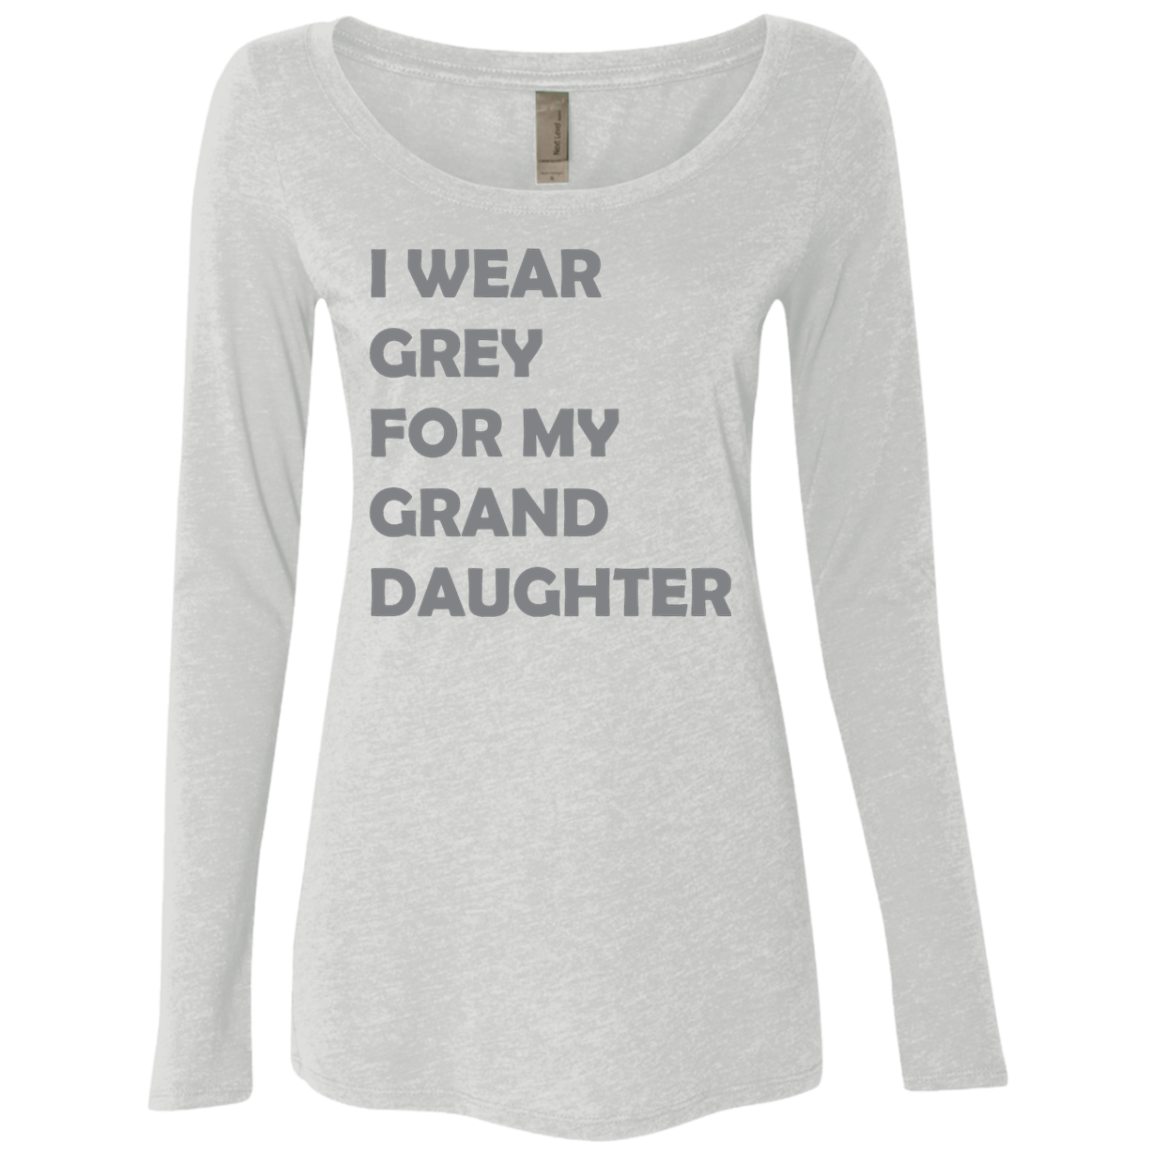 I Wear Grey For My Grand Daughter Women's Long Sleeve Tee